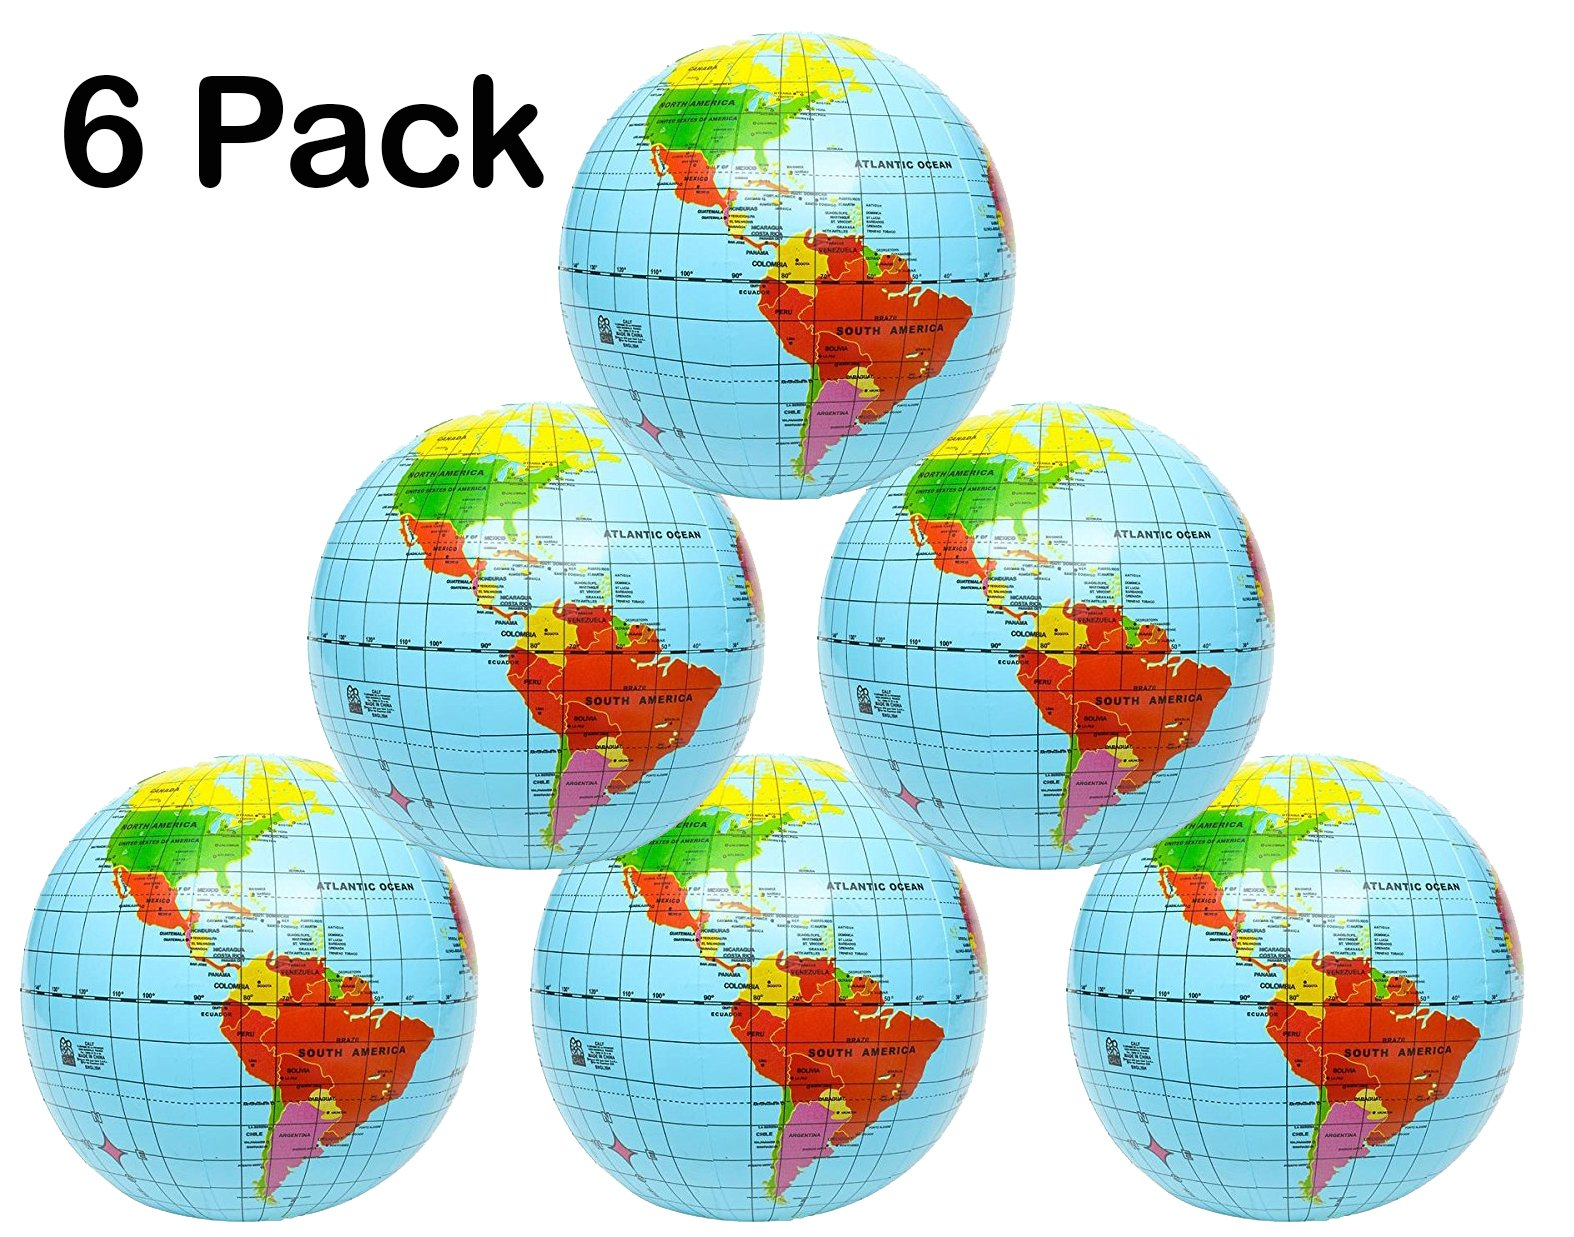 Amazon qualatex globe biodegradable latex balloon 11 inch 12 inflatable world globe 16 inch 6 pack political topographical globes learning resources gumiabroncs Choice Image